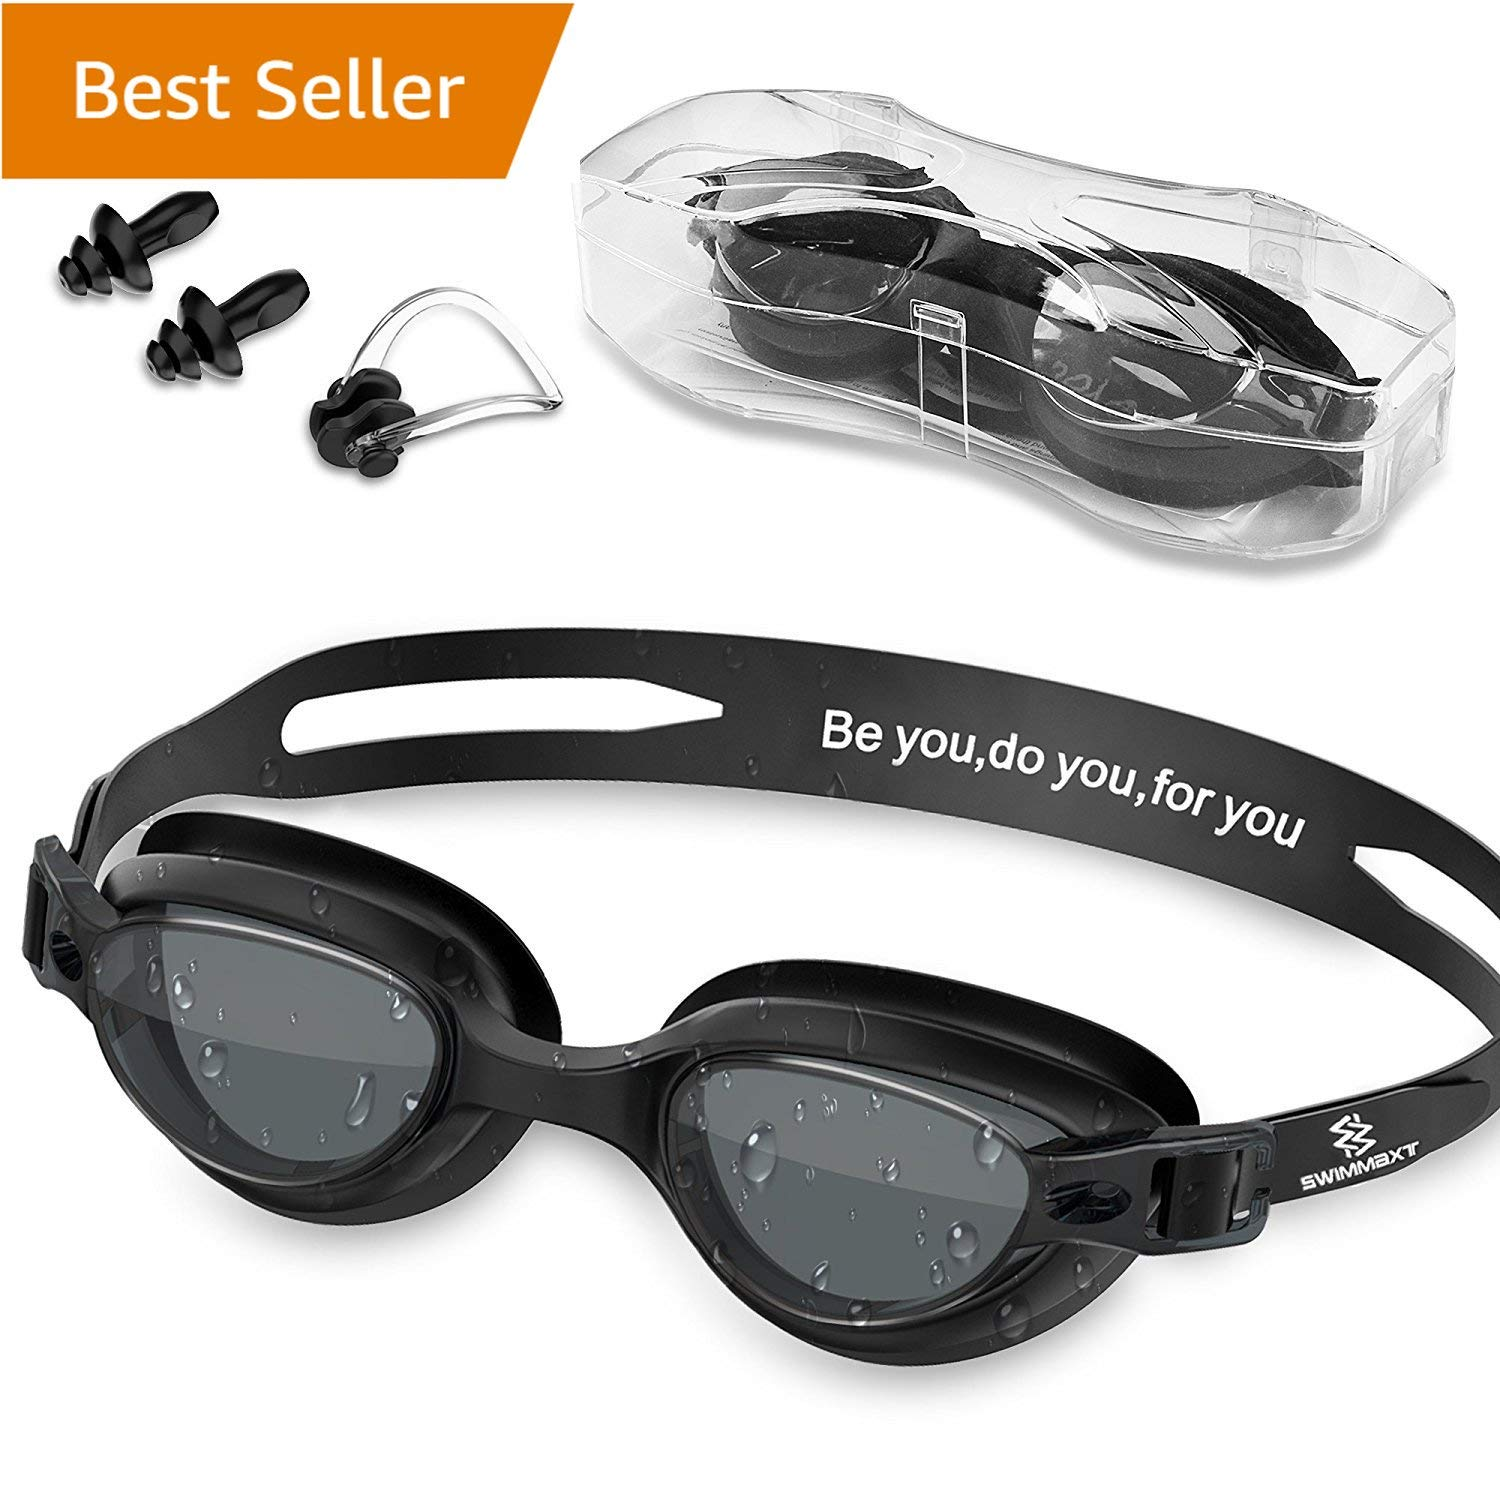 Review of Swim Goggles - Swimming Goggles Nose Clip + Ear Plugs, Anti Fog by Swimmaxt